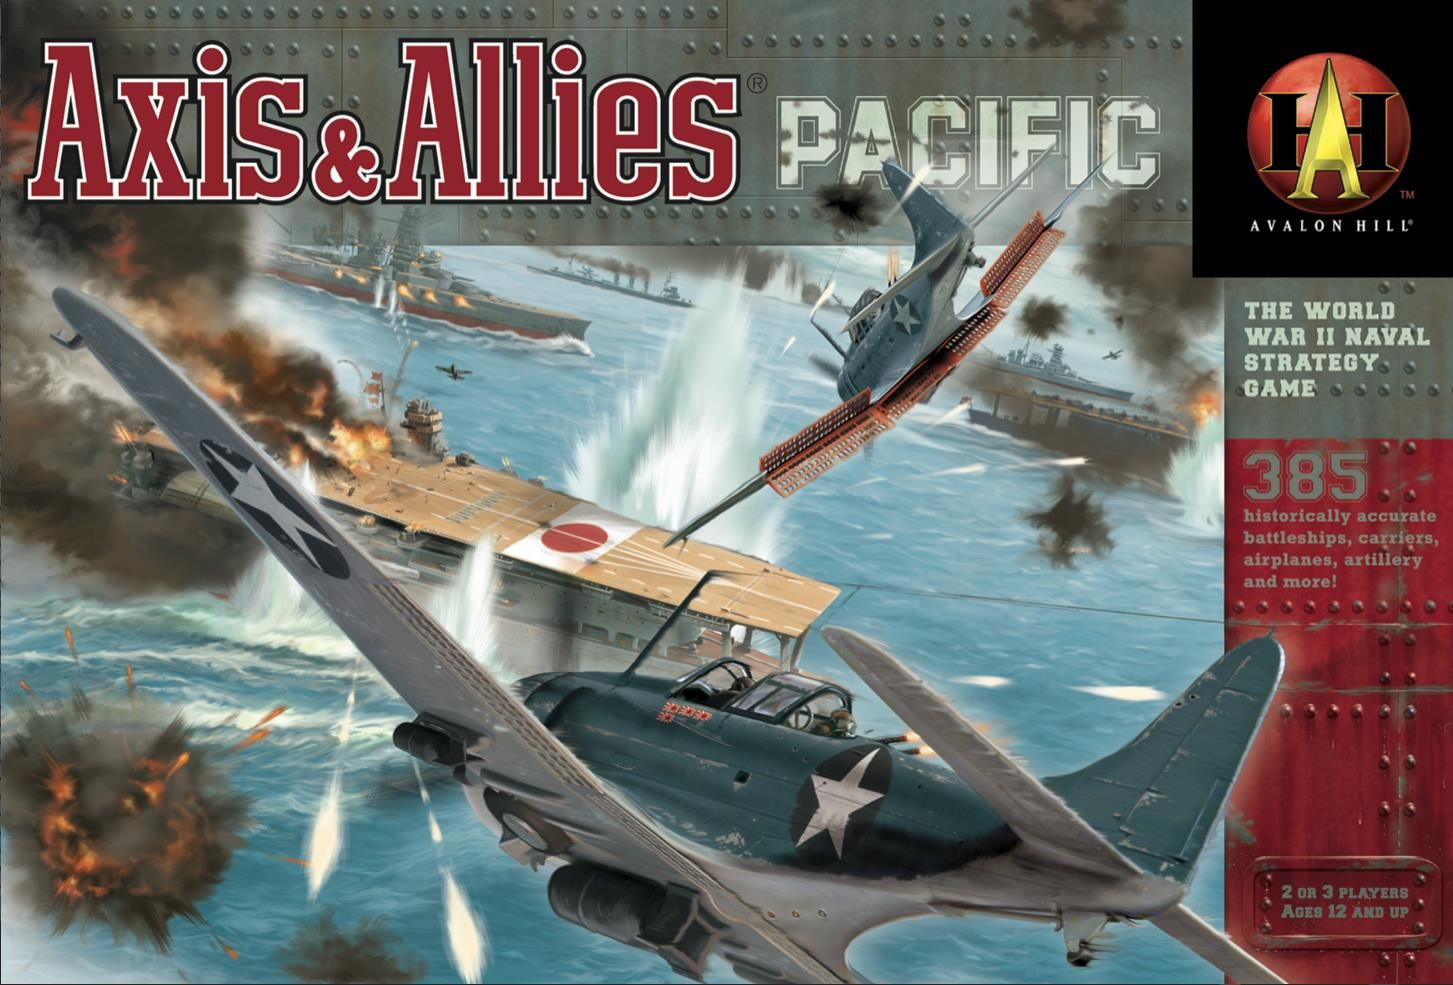 Axis & Allies. Commissioned by Hasbro Games Board games